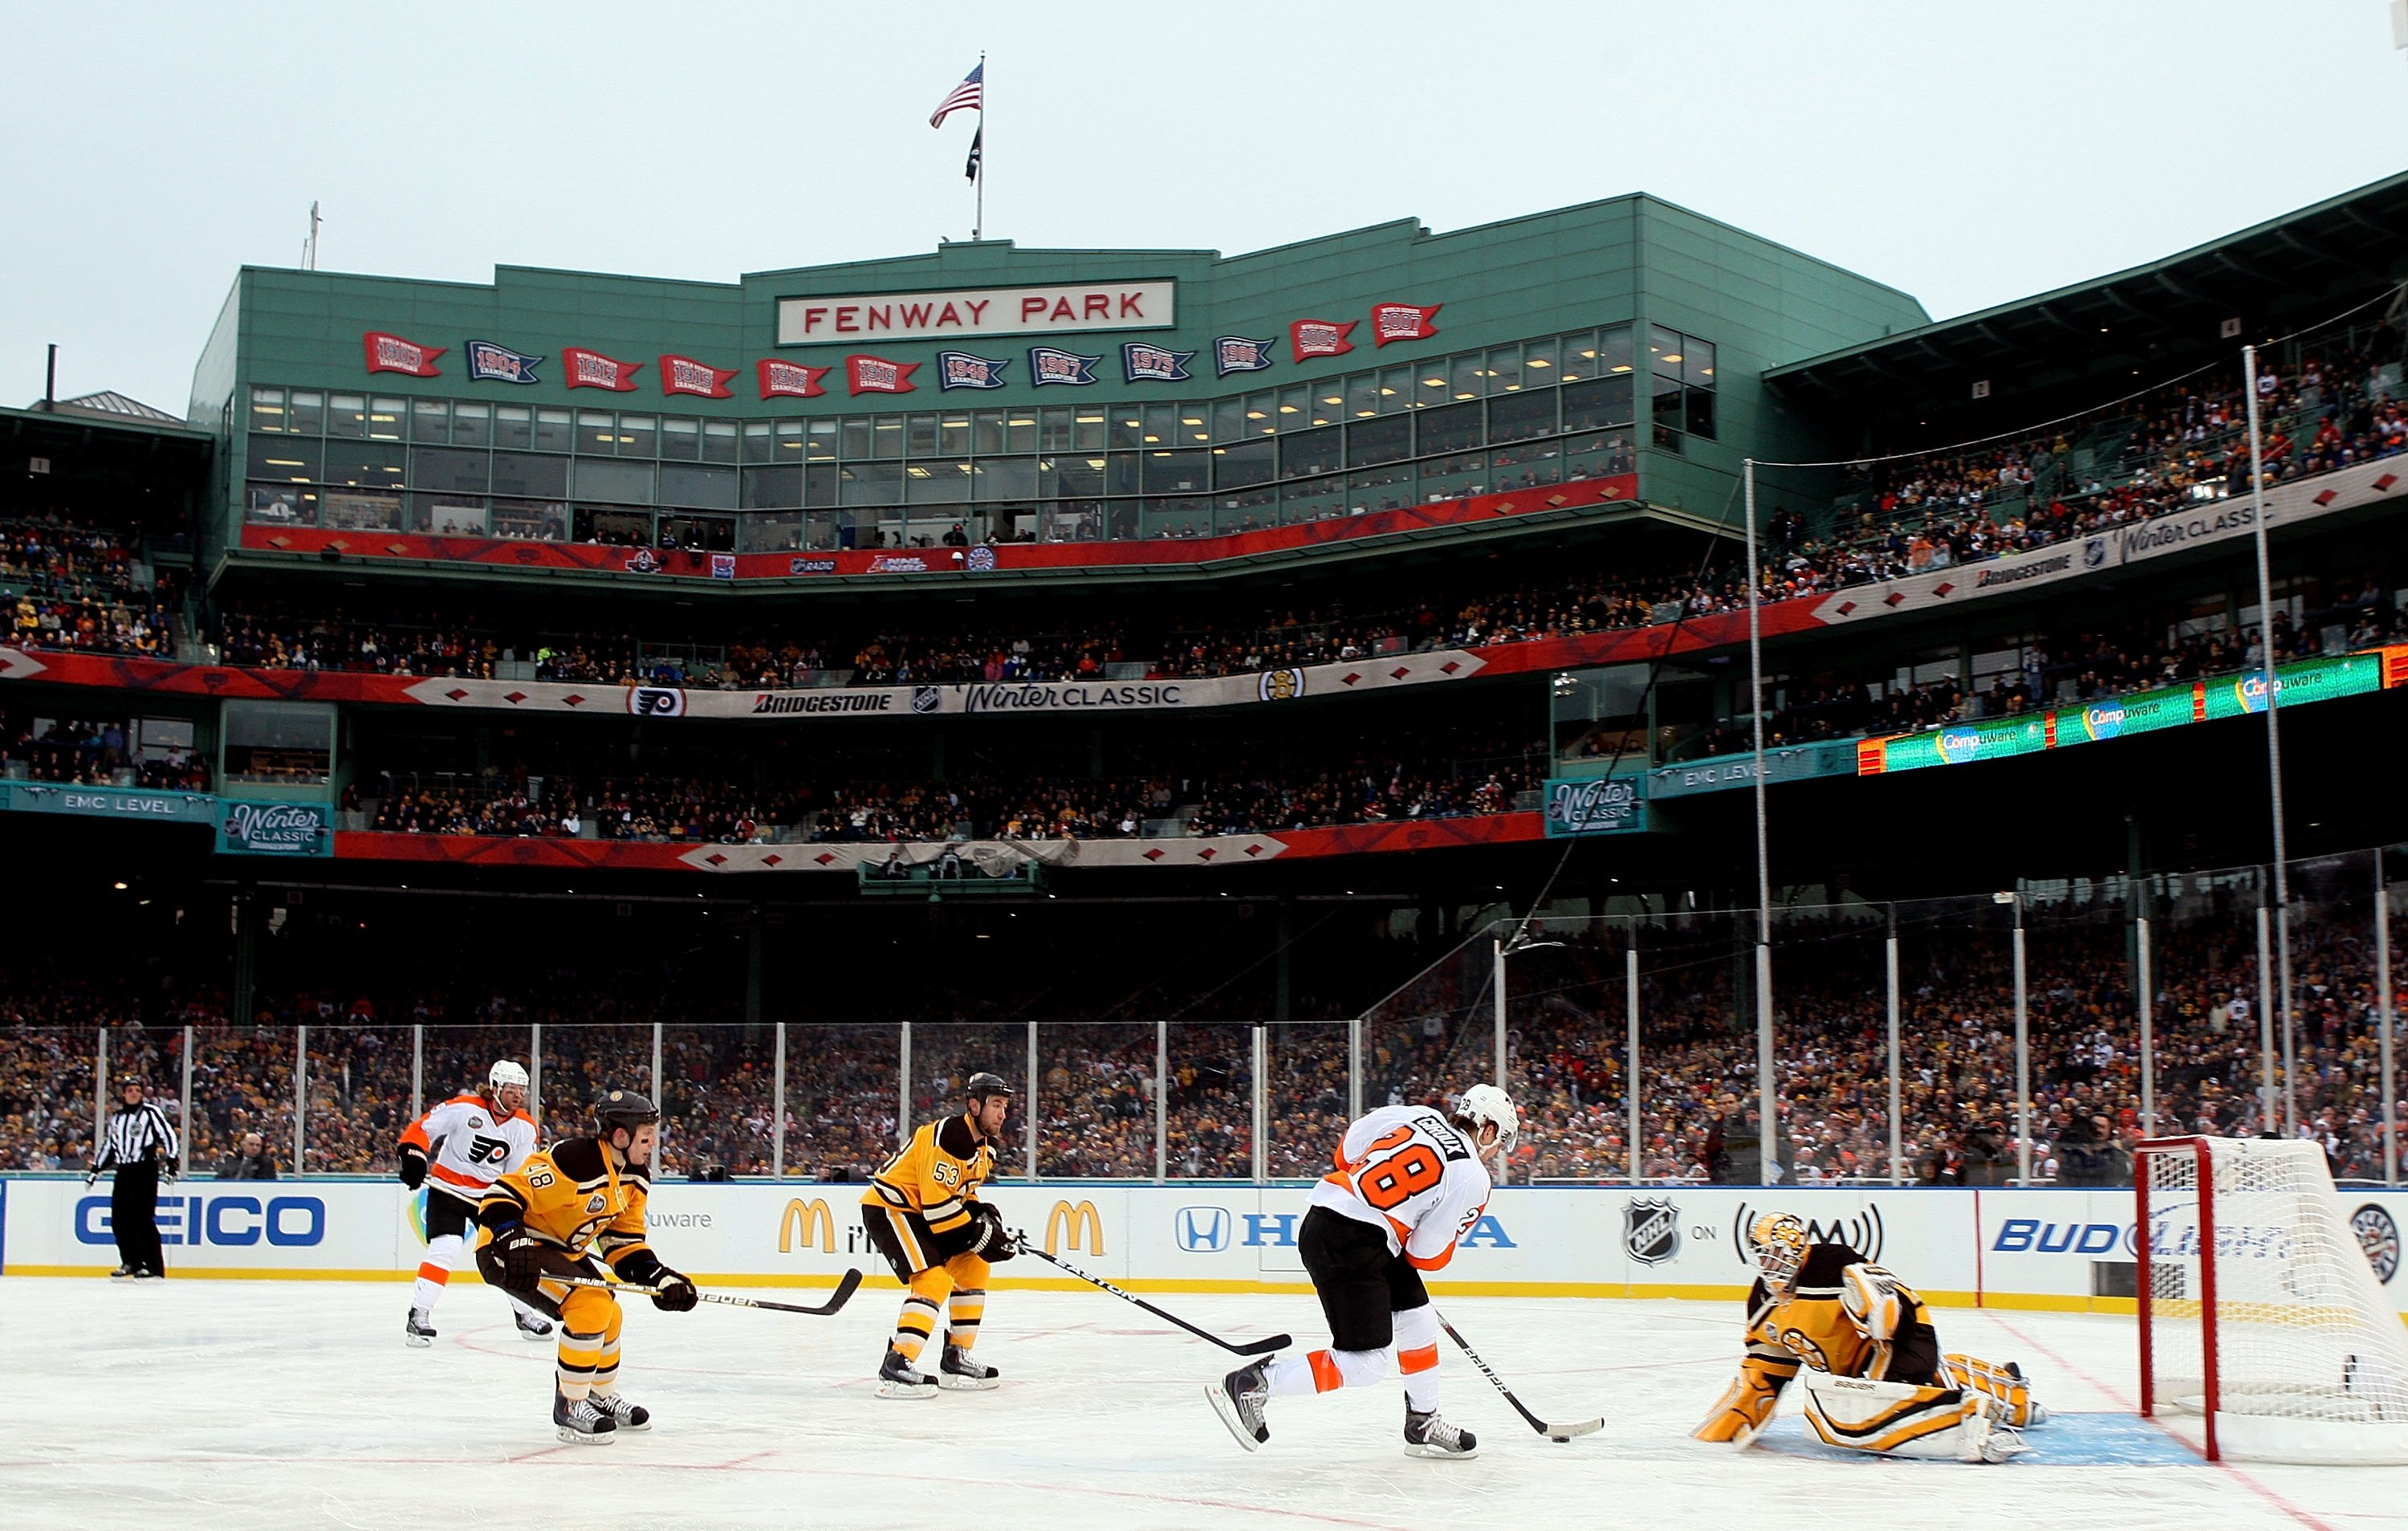 5 Facts You Probably Don't Know About NHL Outdoor Games